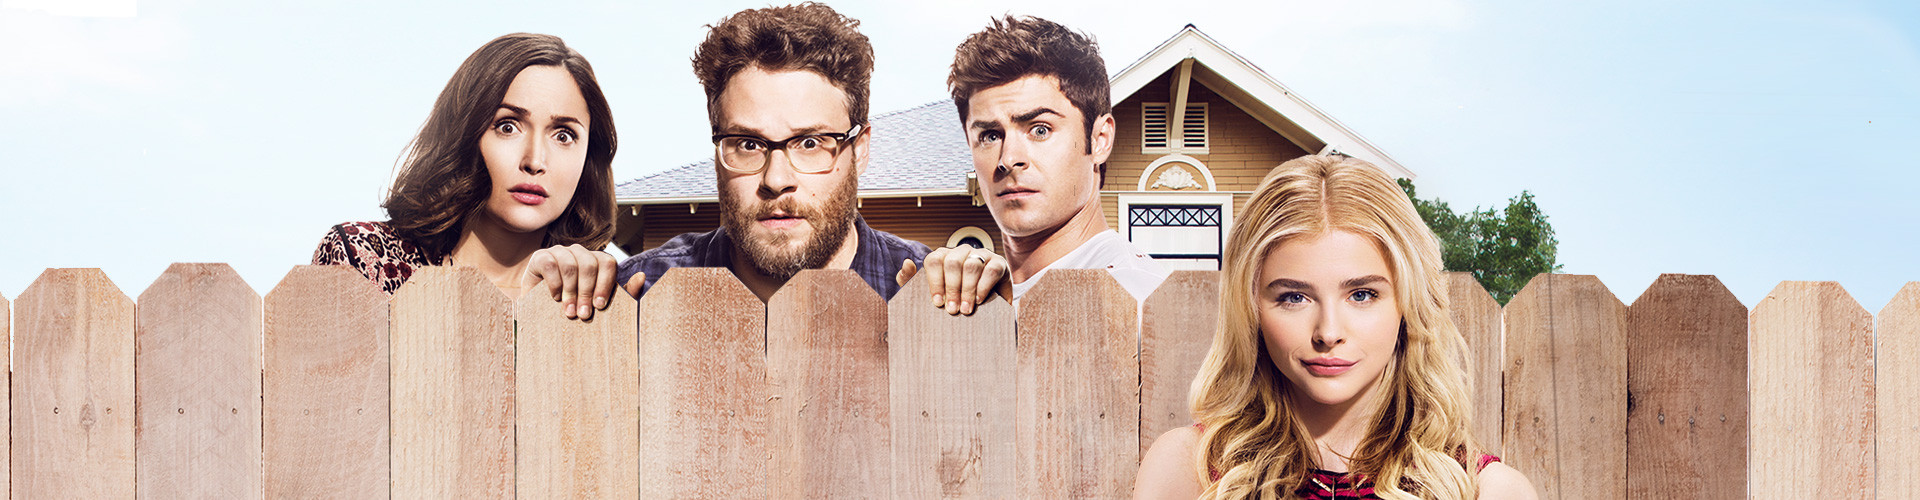 bad-neighbours-2-banner.jpg